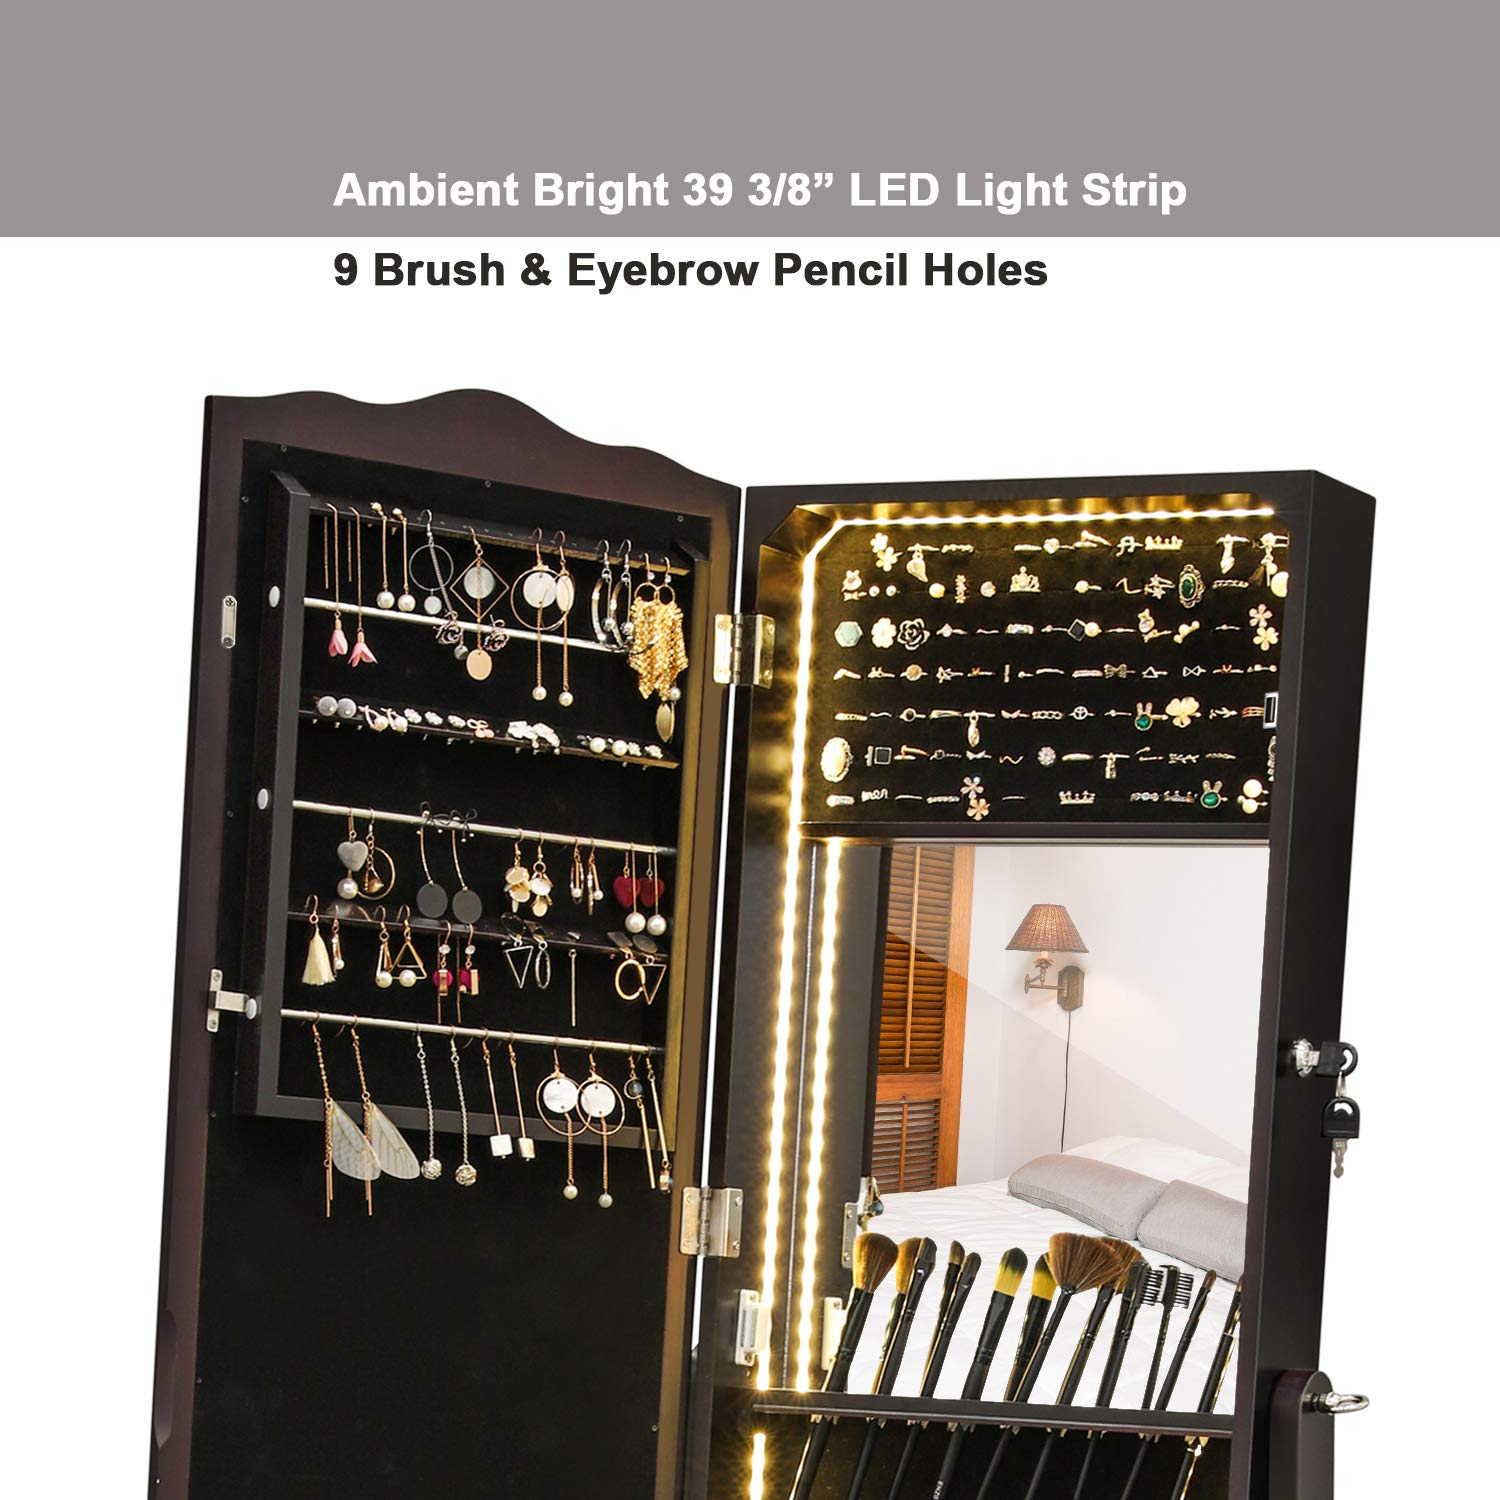 SONGMICS LED Jewelry Cabinet Lockable Jewelry Armoire with Full Length Mirror, Makeup Tray and Large Drawer Base Brown Patented Mother's Day Gift UJJC87BR by SONGMICS (Image #4)